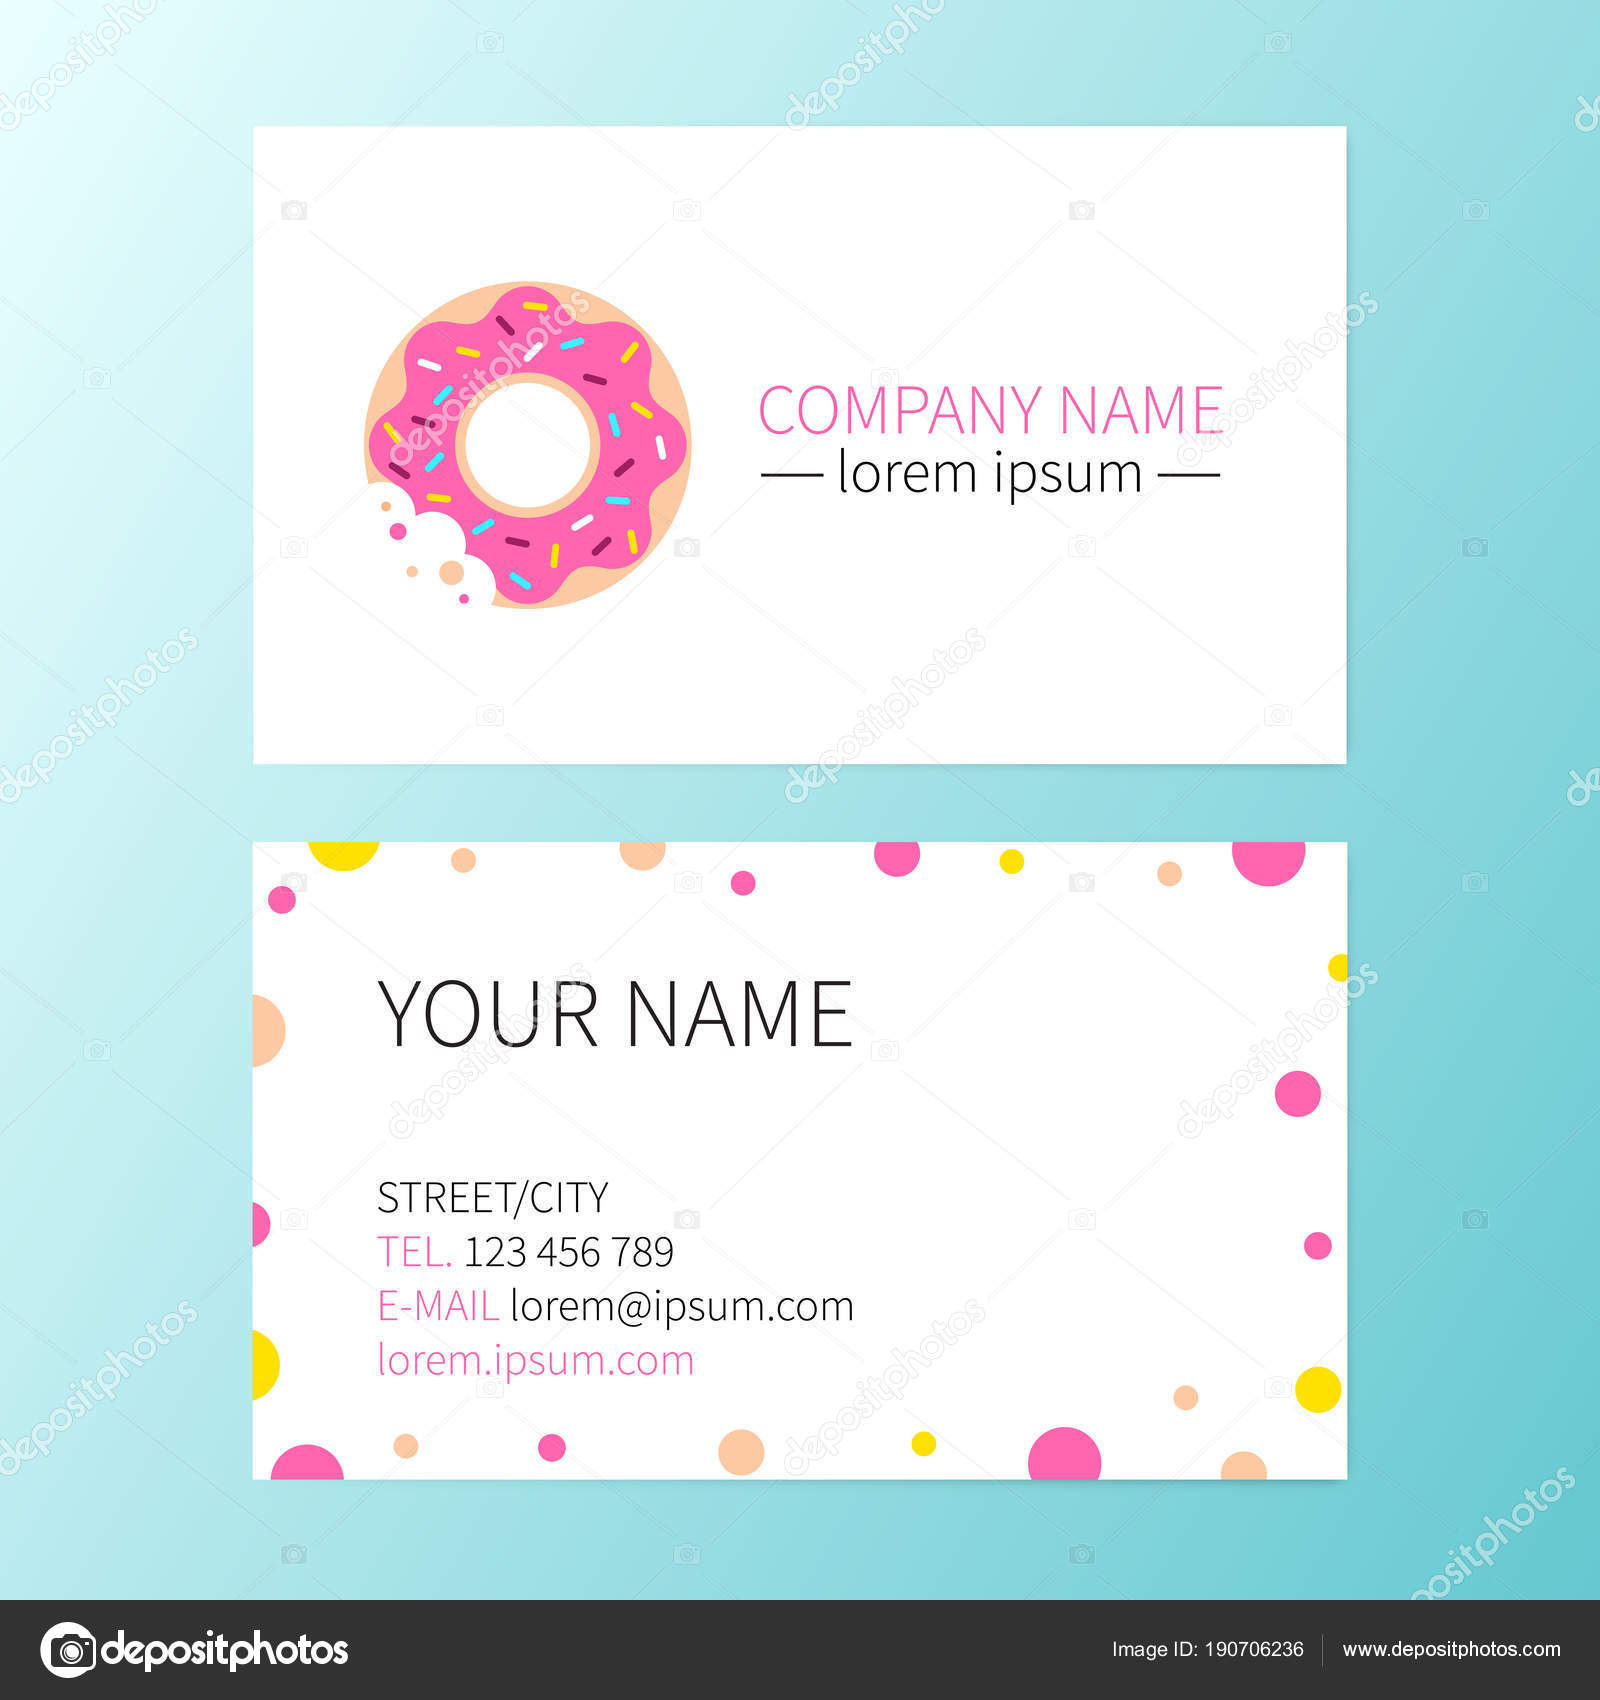 Vector Sweet Business Card Donut Cafe Shop Or Bakery Corporate